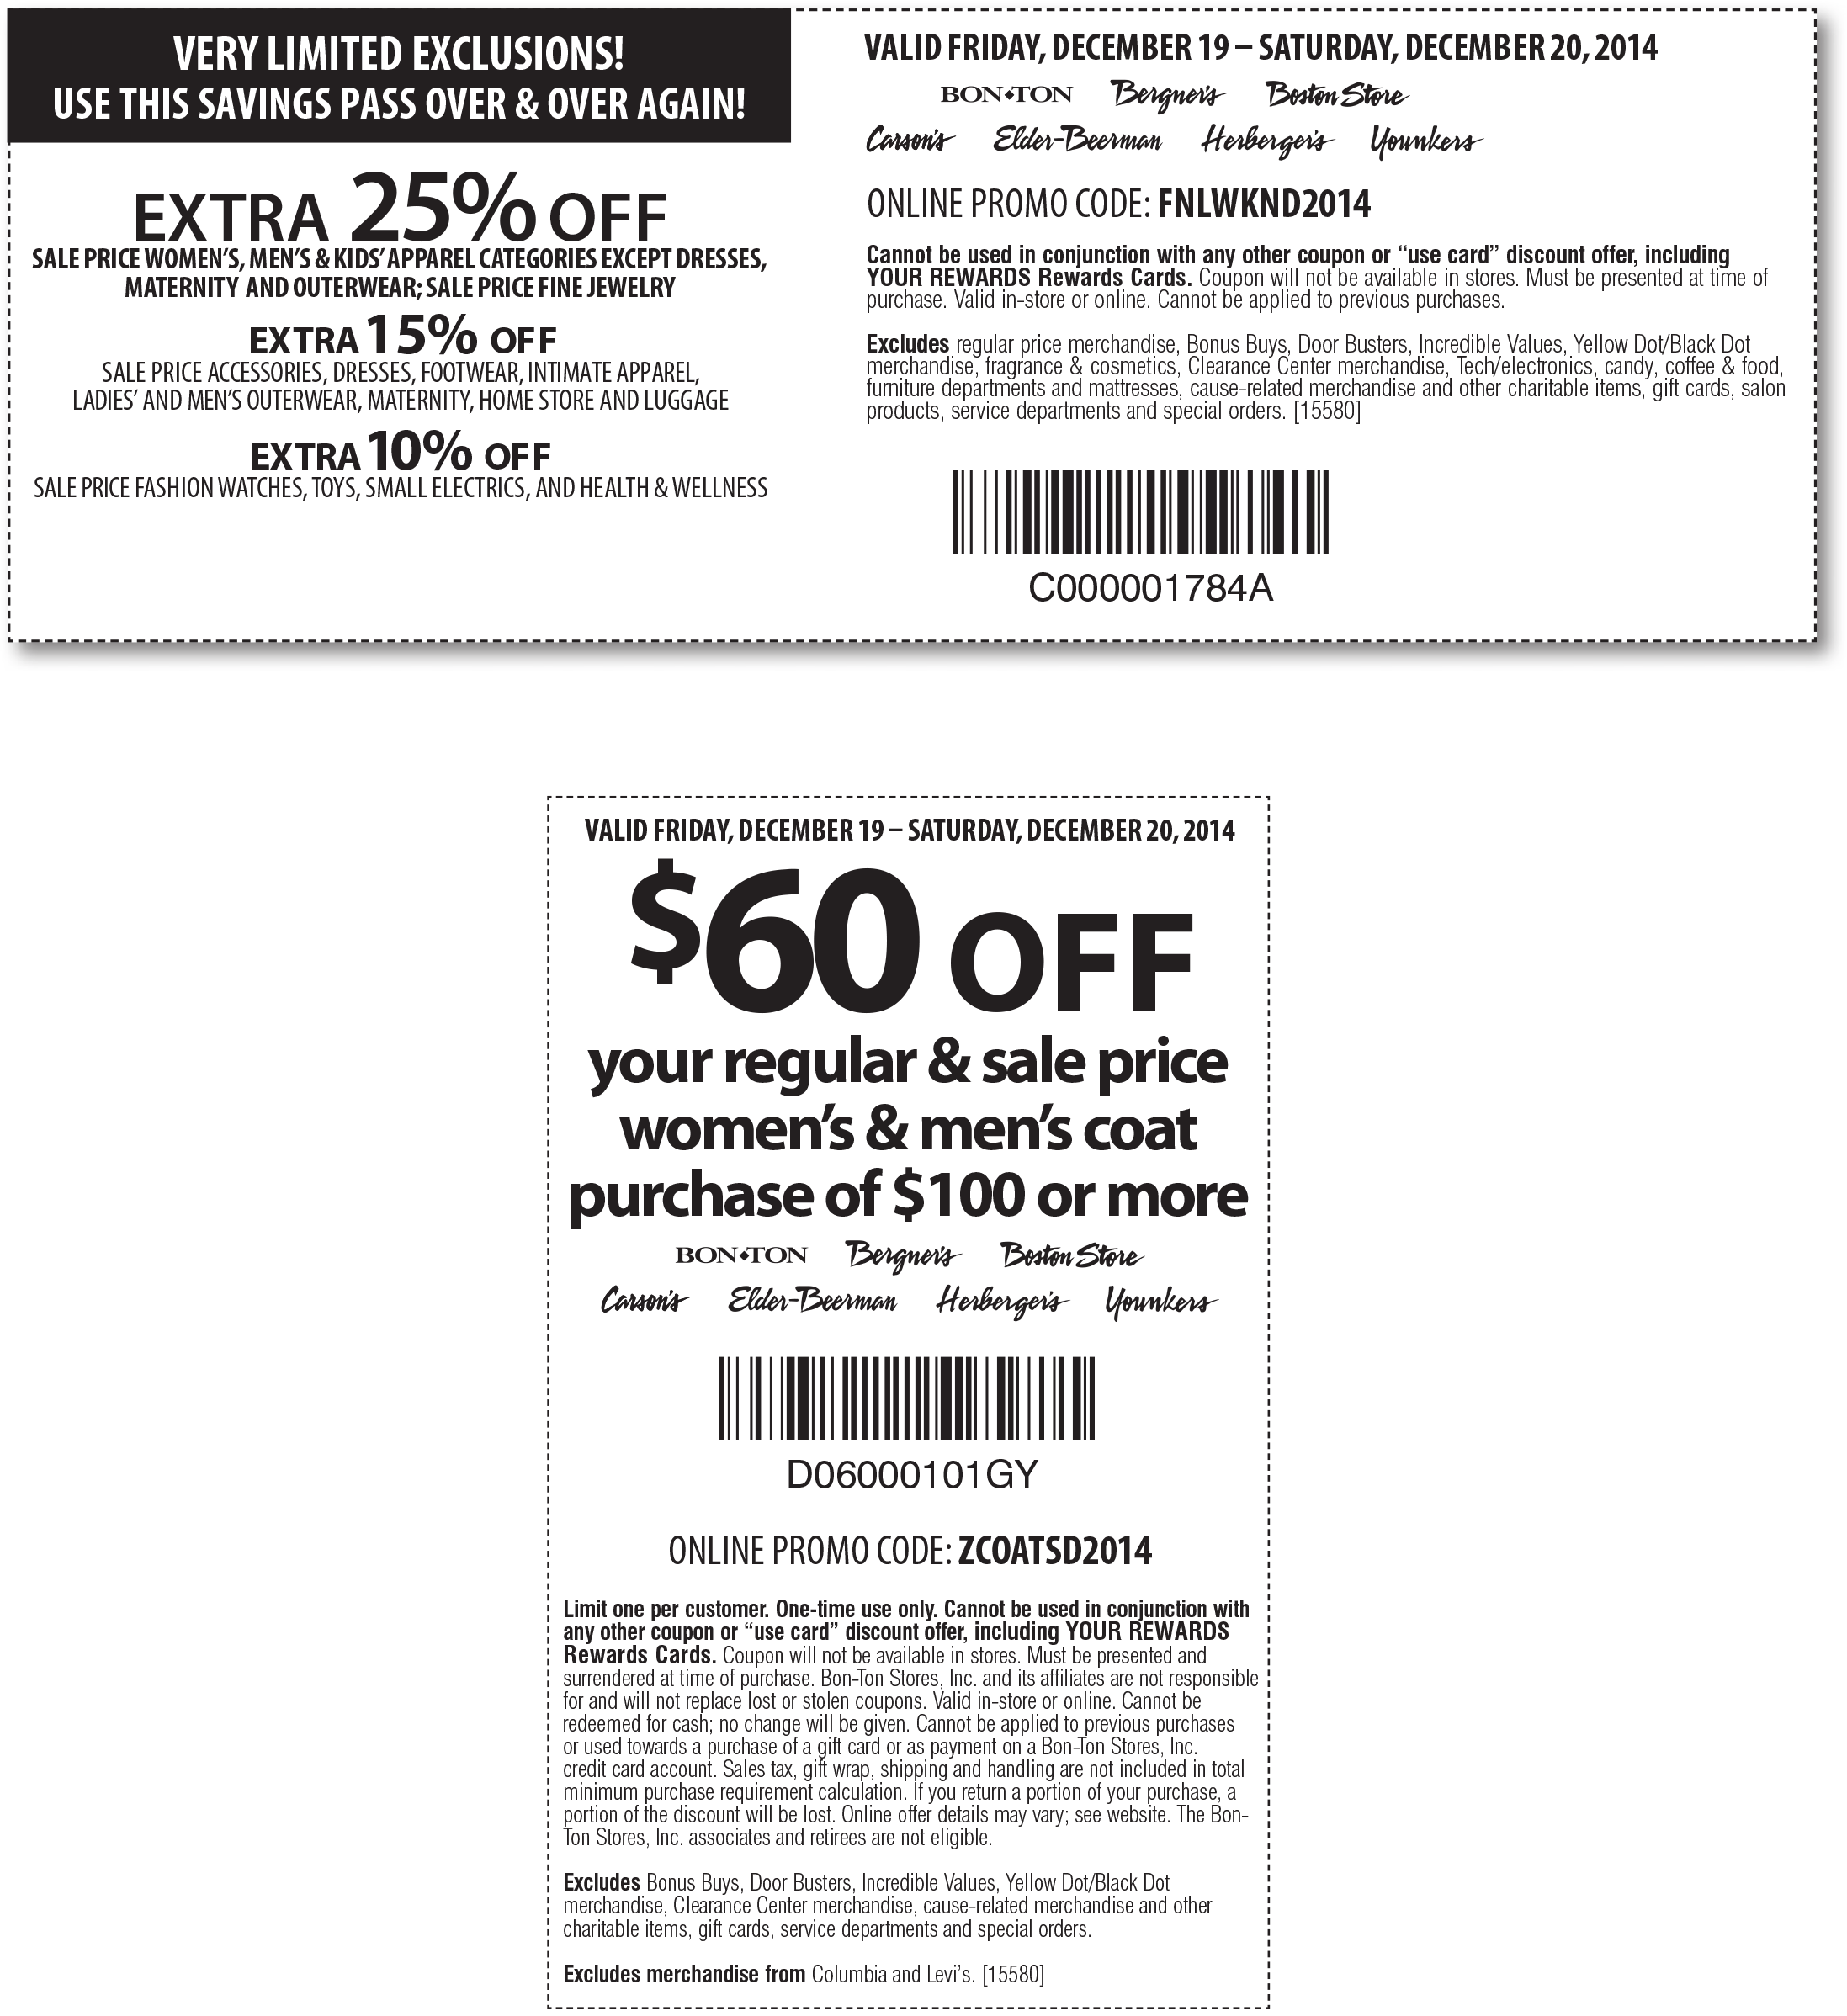 Carsons Coupon June 2018 Extra 25% off sale apparel today at Carsons, Bon Ton & sister stores, or online via promo code FNLWKND2014